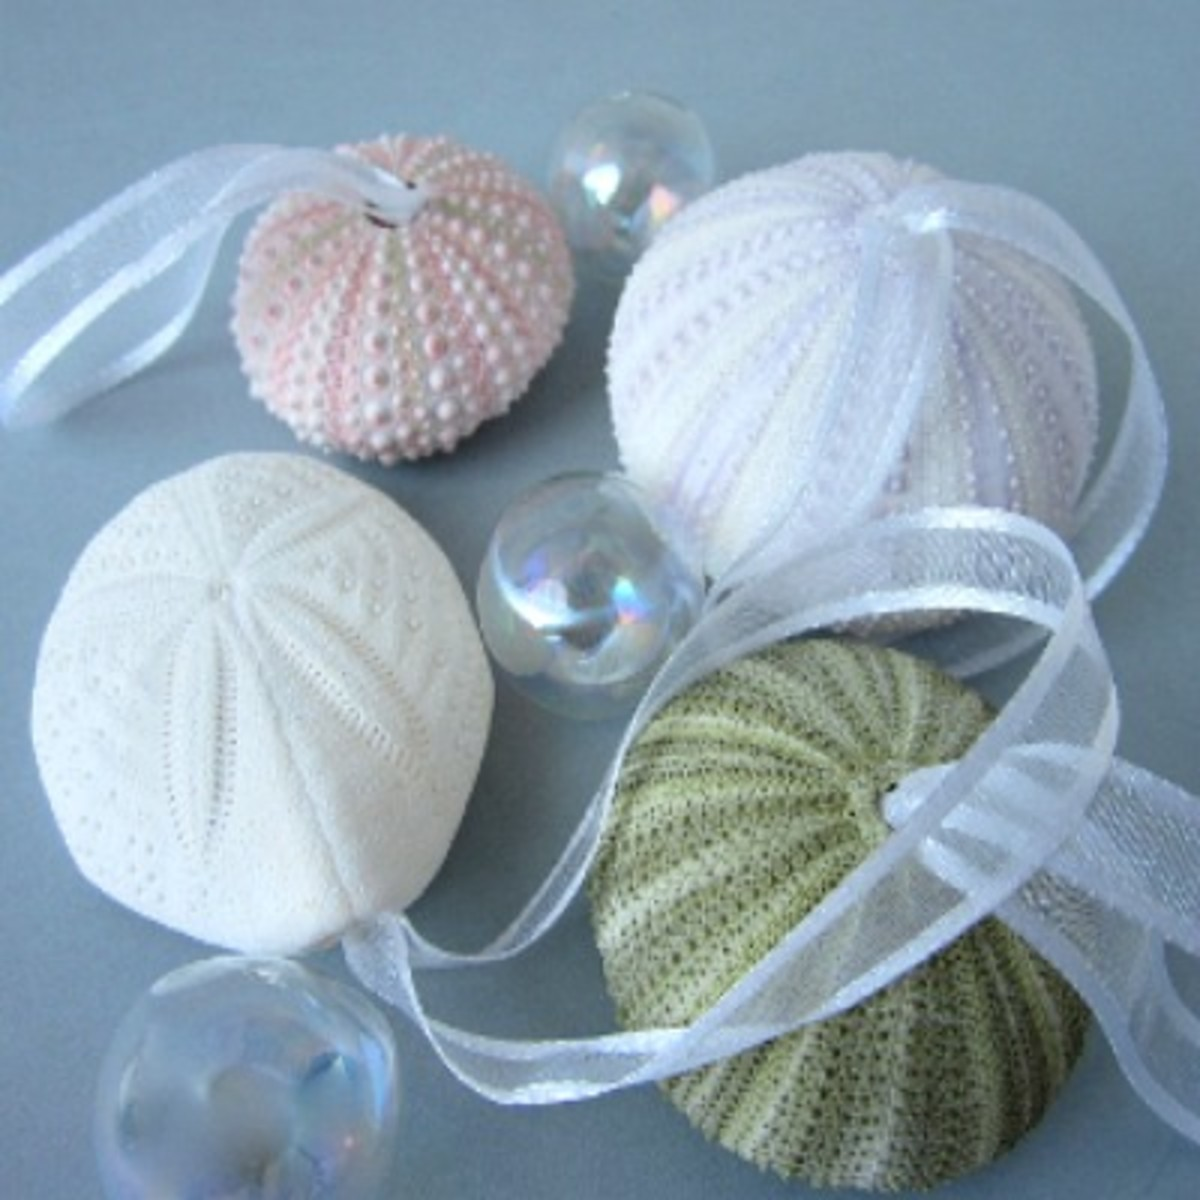 http://www.etsy.com/listing/162163734/beach-decor-sea-urchin-christmas?ref=shop_home_active